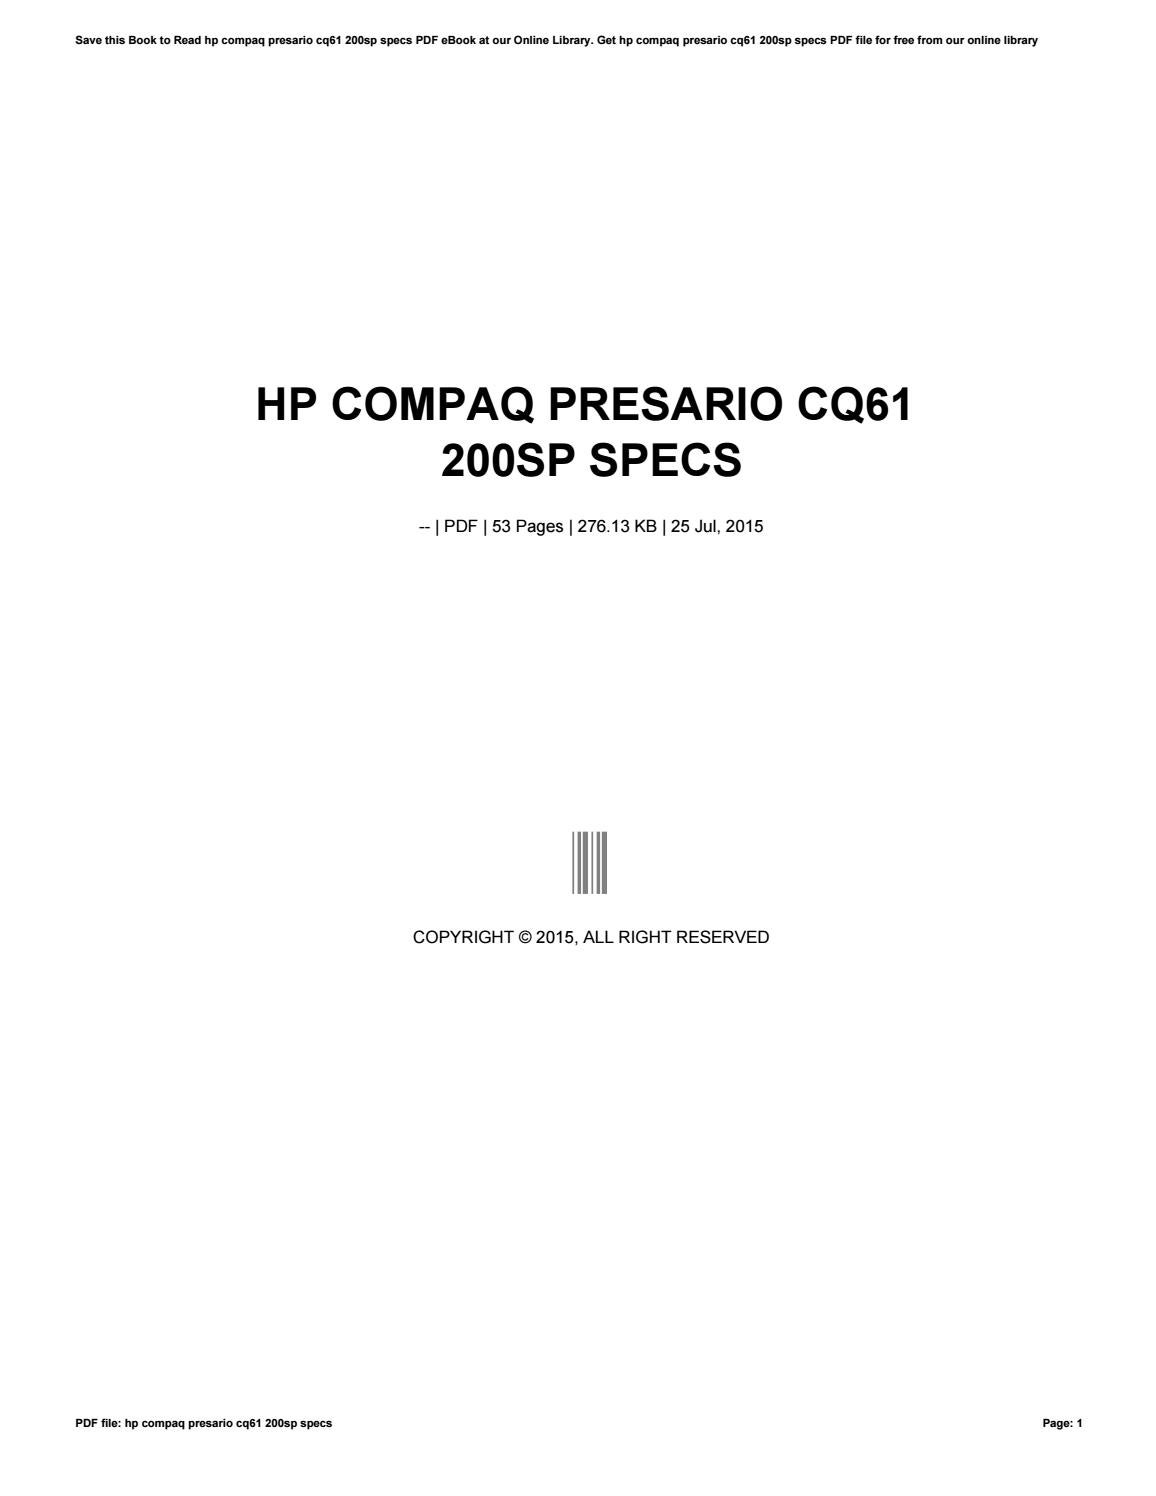 Compaq Cq61 Service Manual Ebook Onanmarquis5000generatorwiring Motorhome 2520t1977dodge Pdf Array Hp Presario 200sp Specs By Apssdc84 Issuu Rh